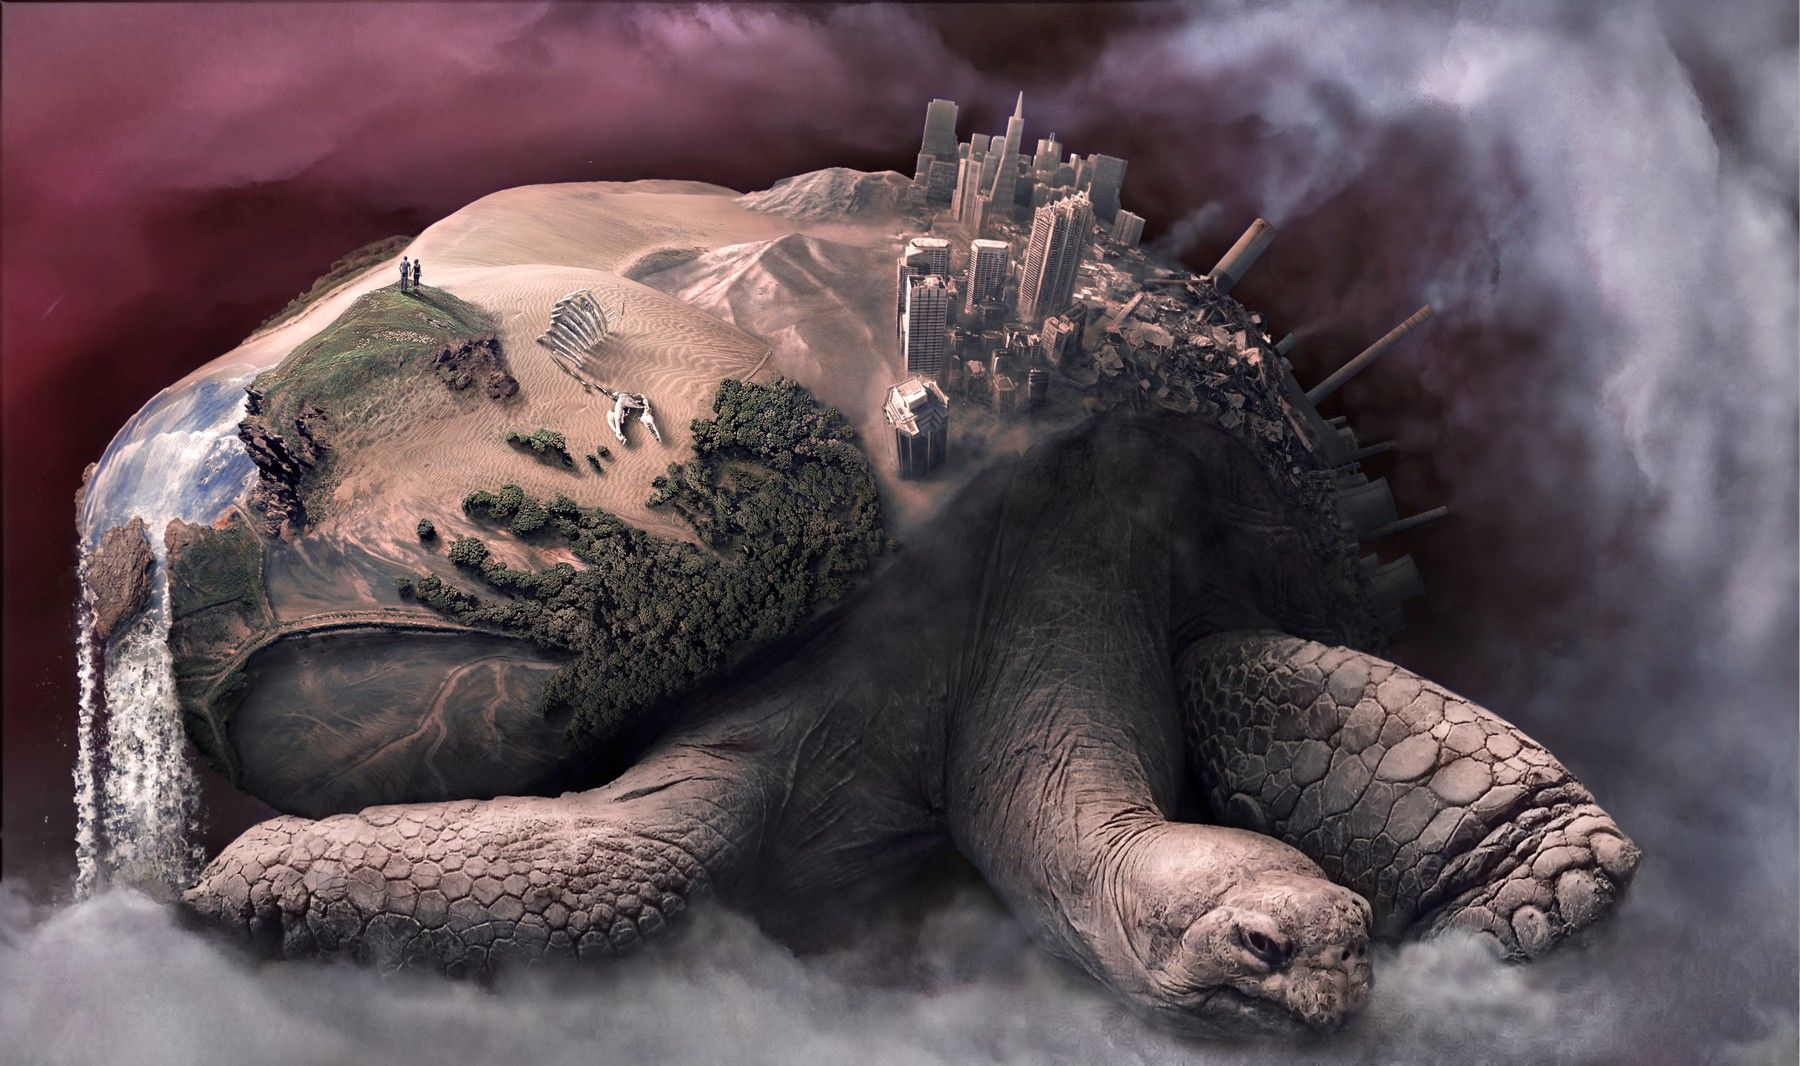 1800x1066 2964449 turtle artwork wallpaper and background   Abstract ...